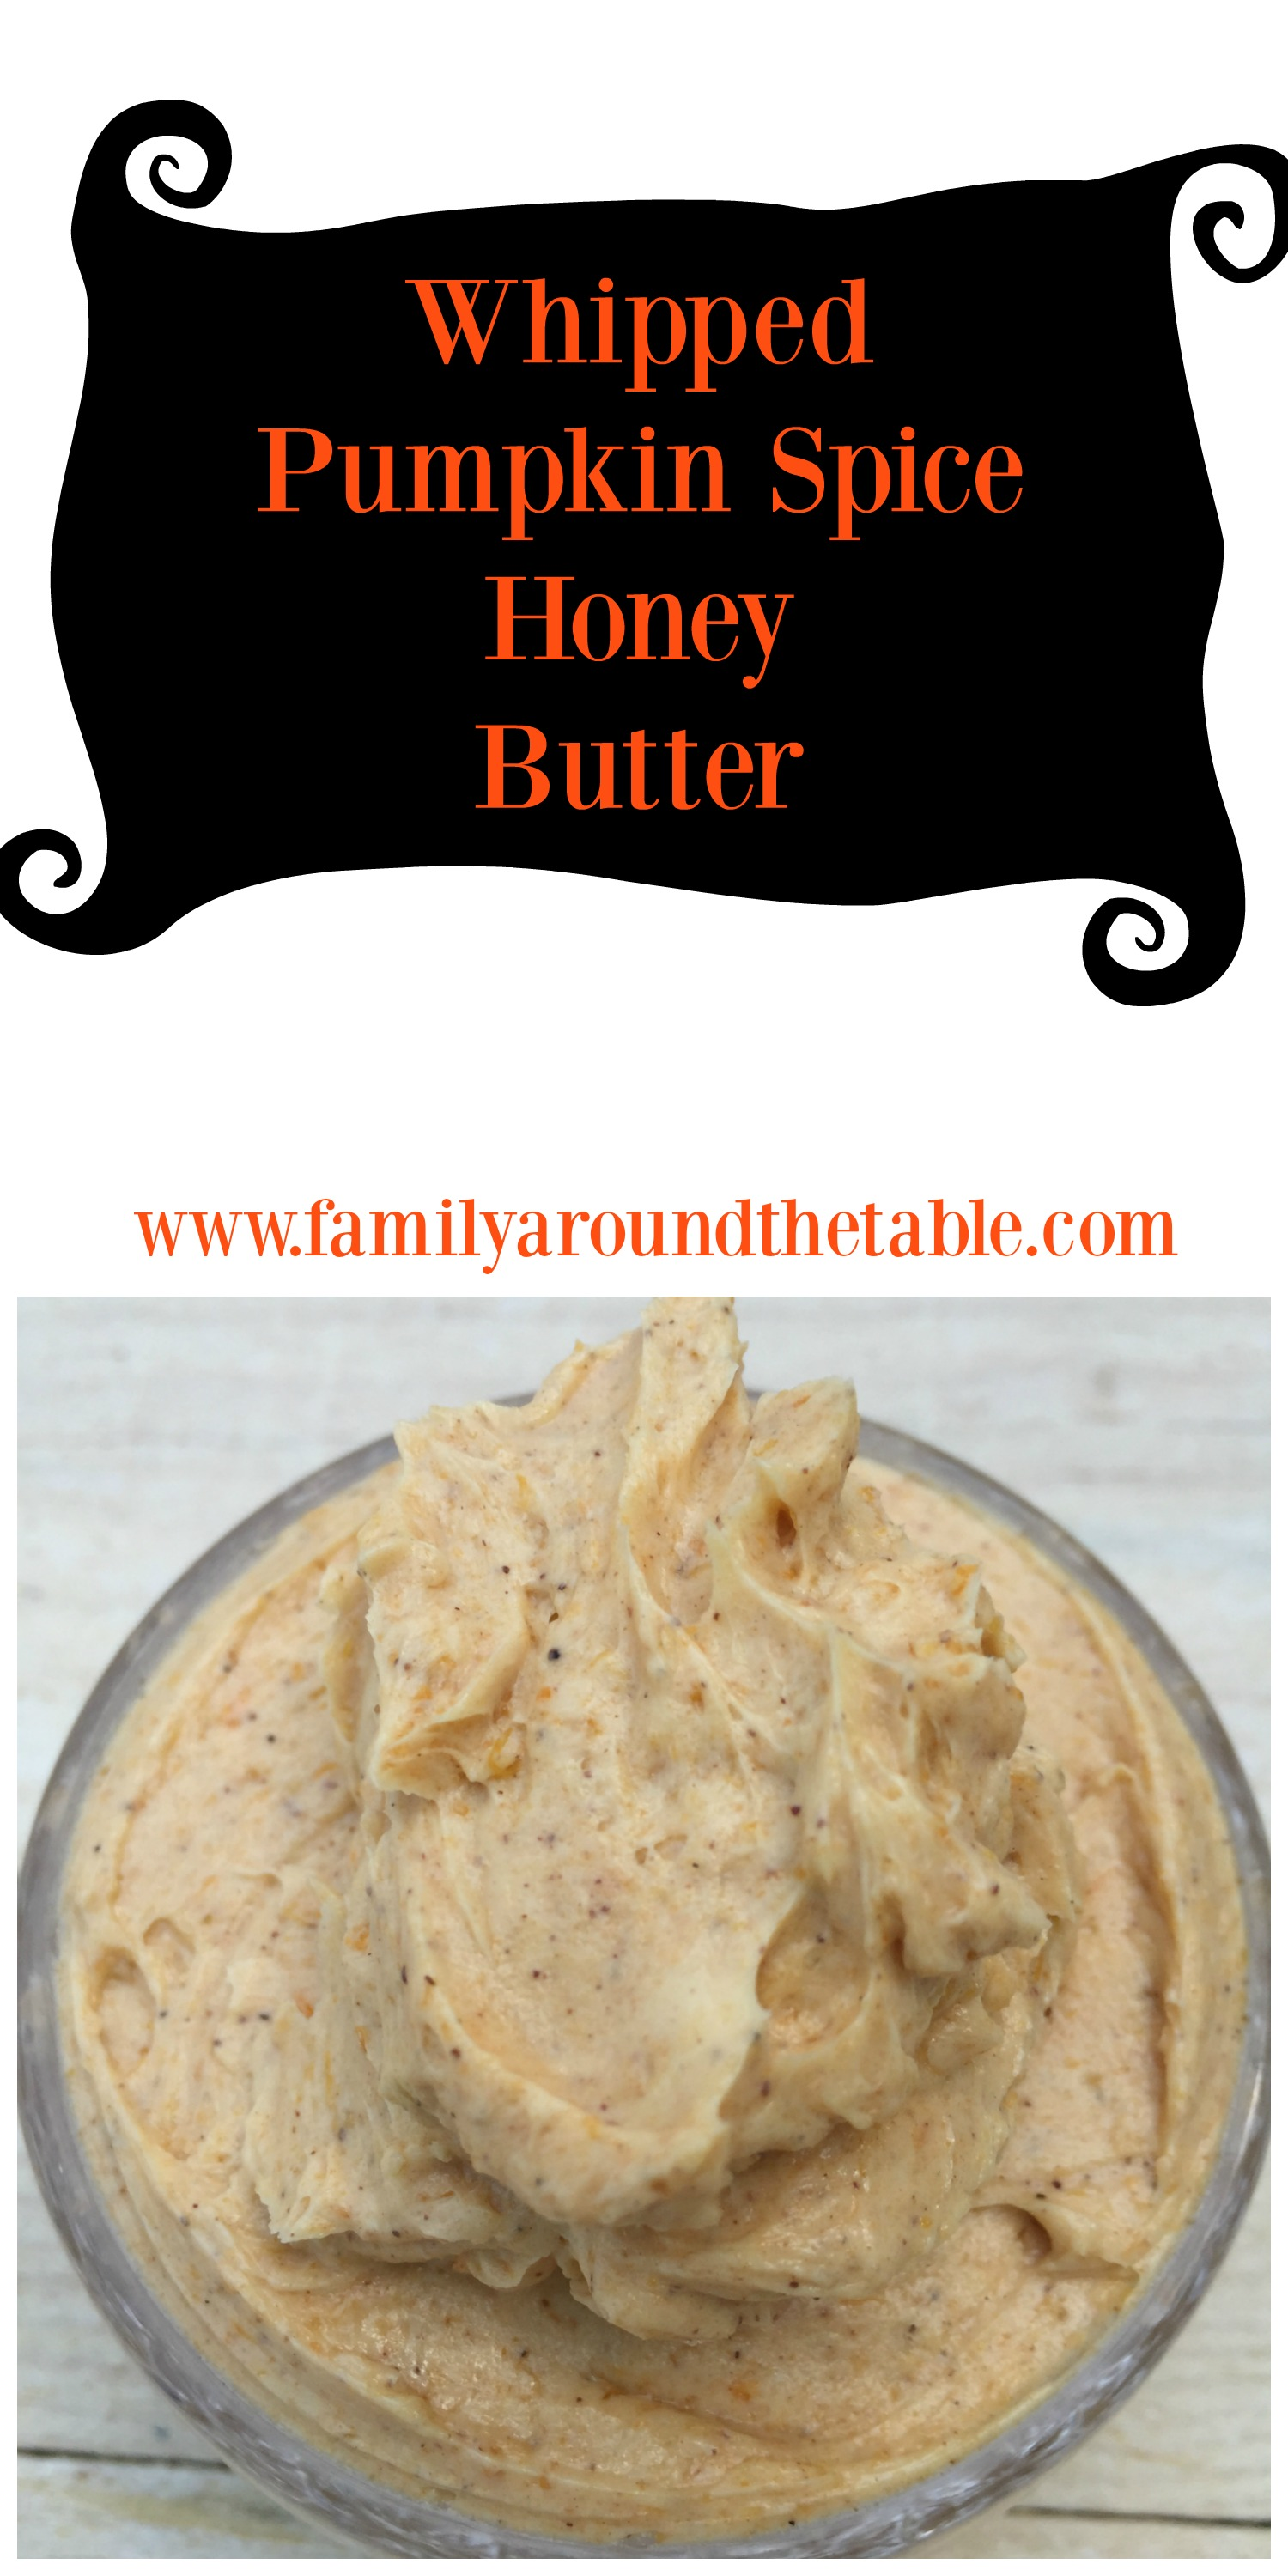 Whipped Pumpkin Spice Honey Butter is delicious on pancakes, muffins, toast and waffles.